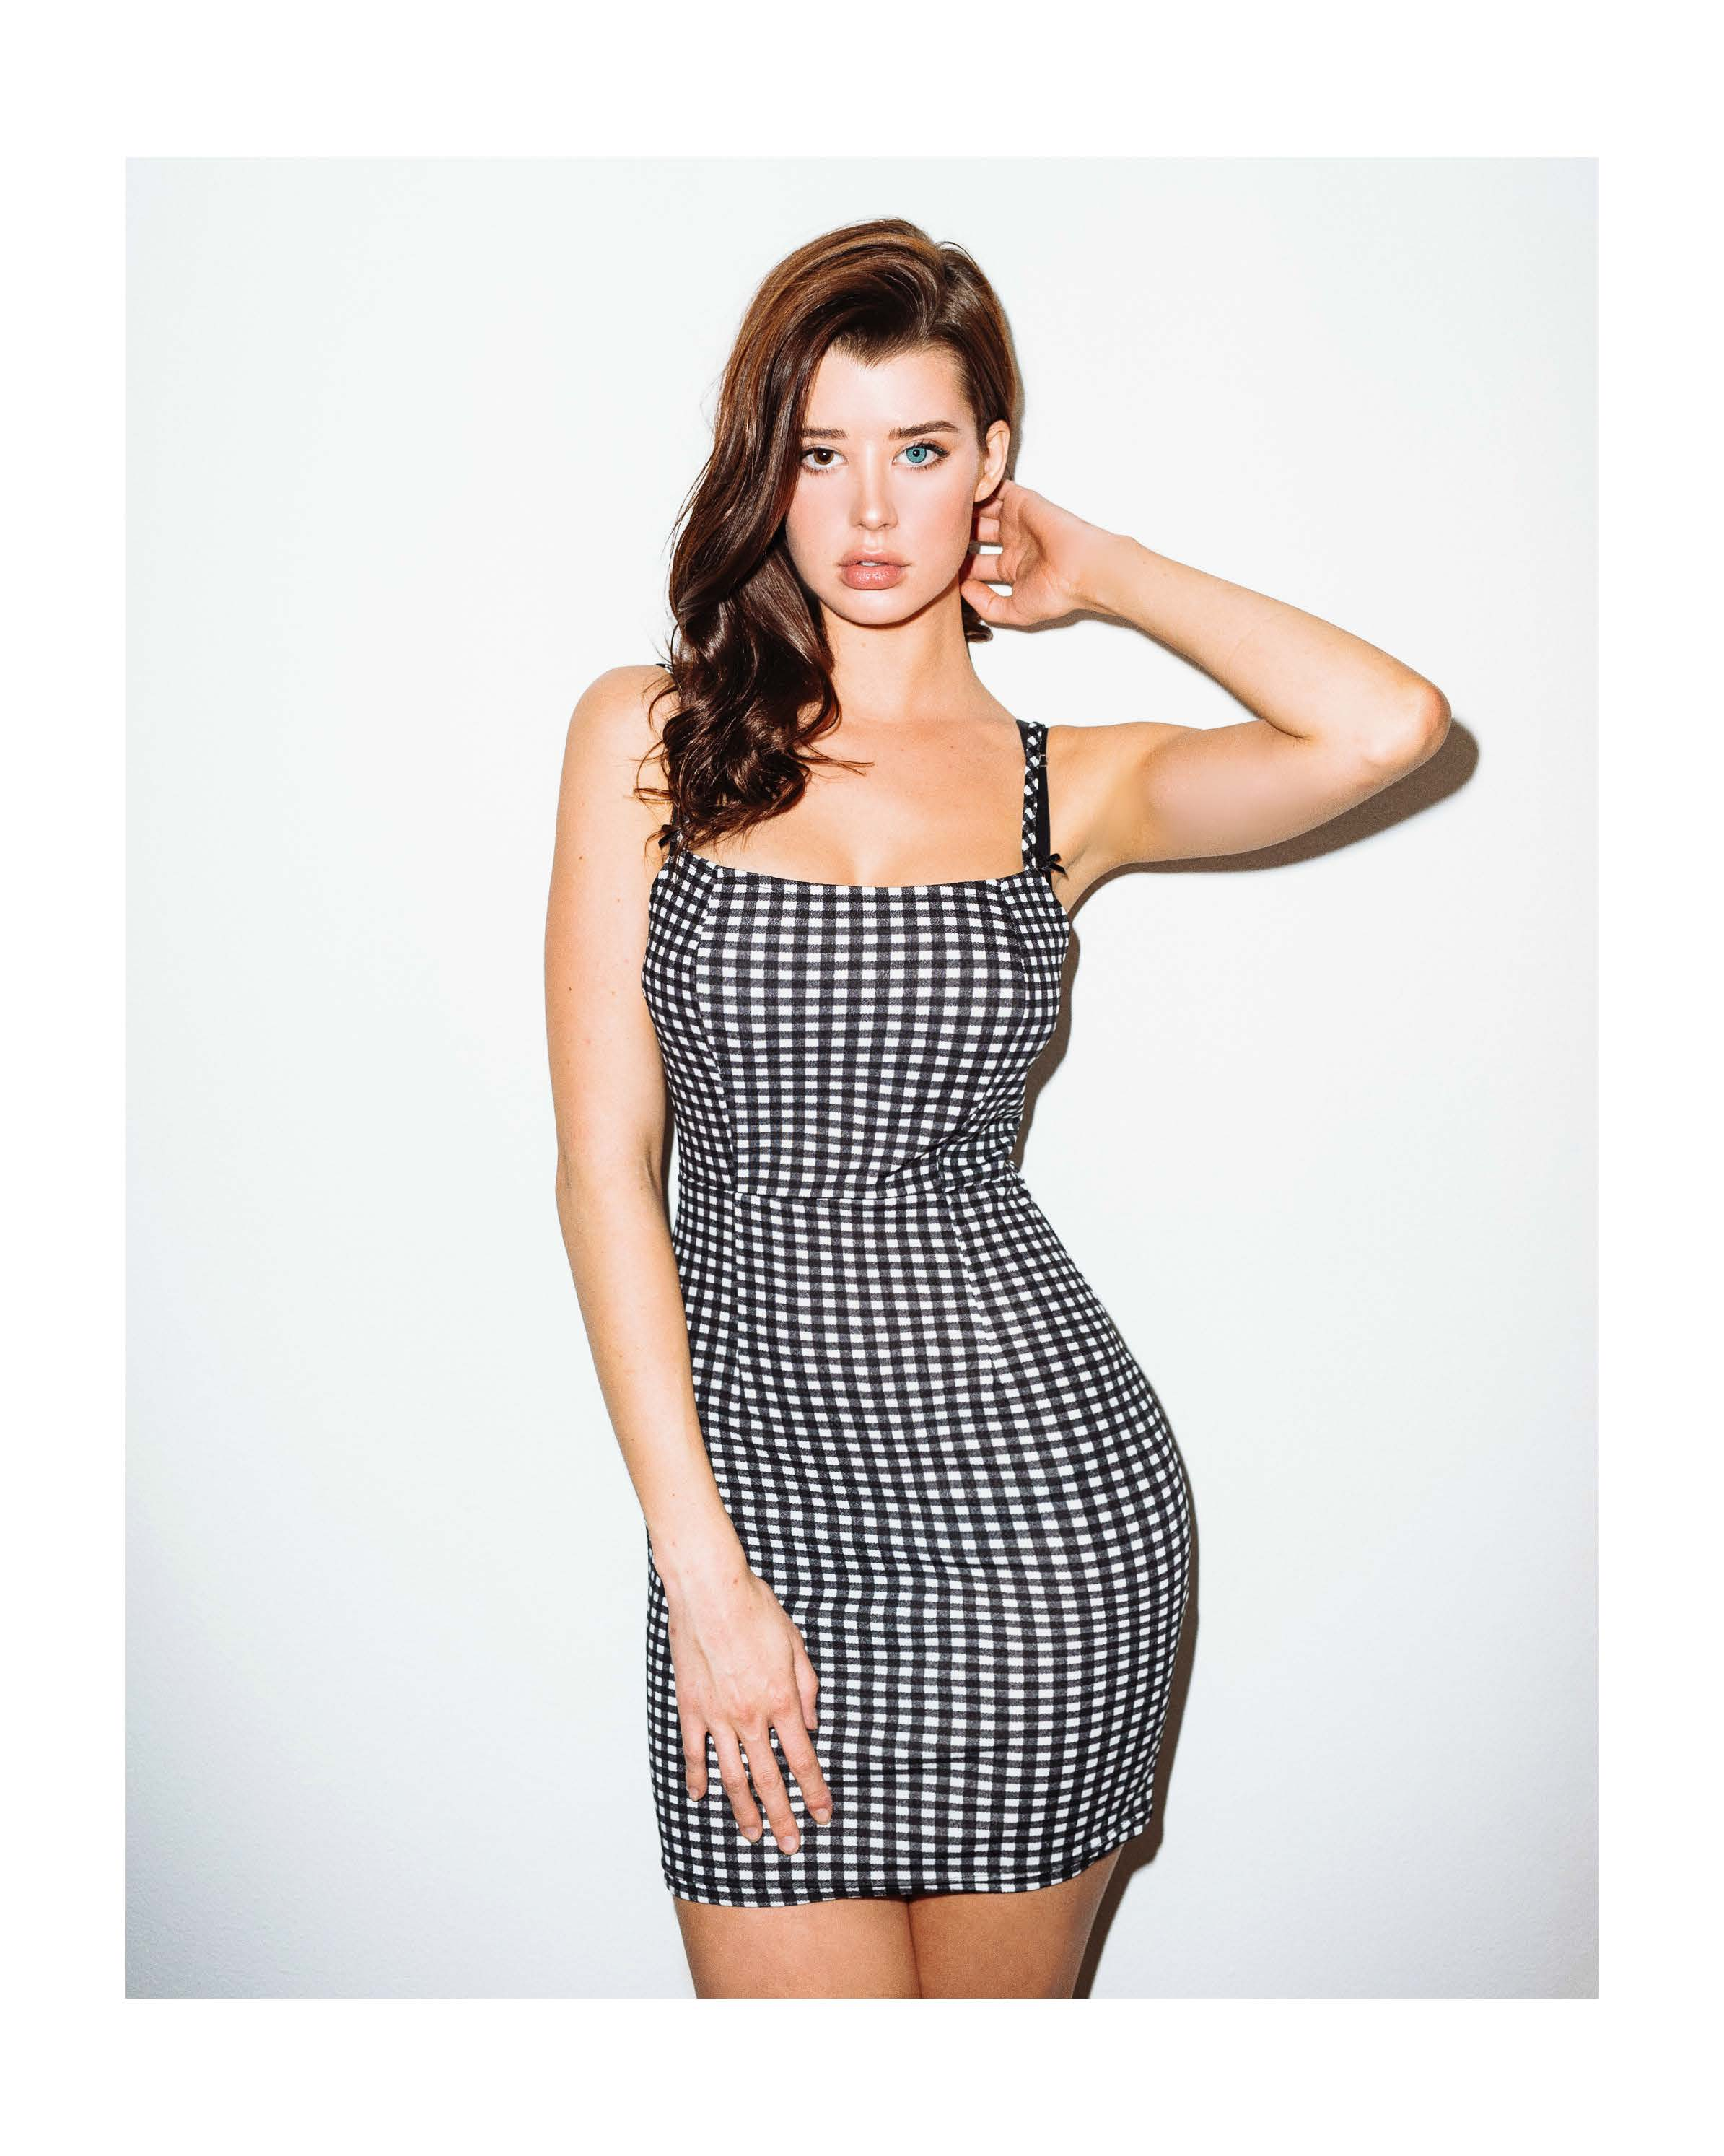 Celebrity Sarah McDaniel nudes (12 foto and video), Sexy, Paparazzi, Feet, see through 2015